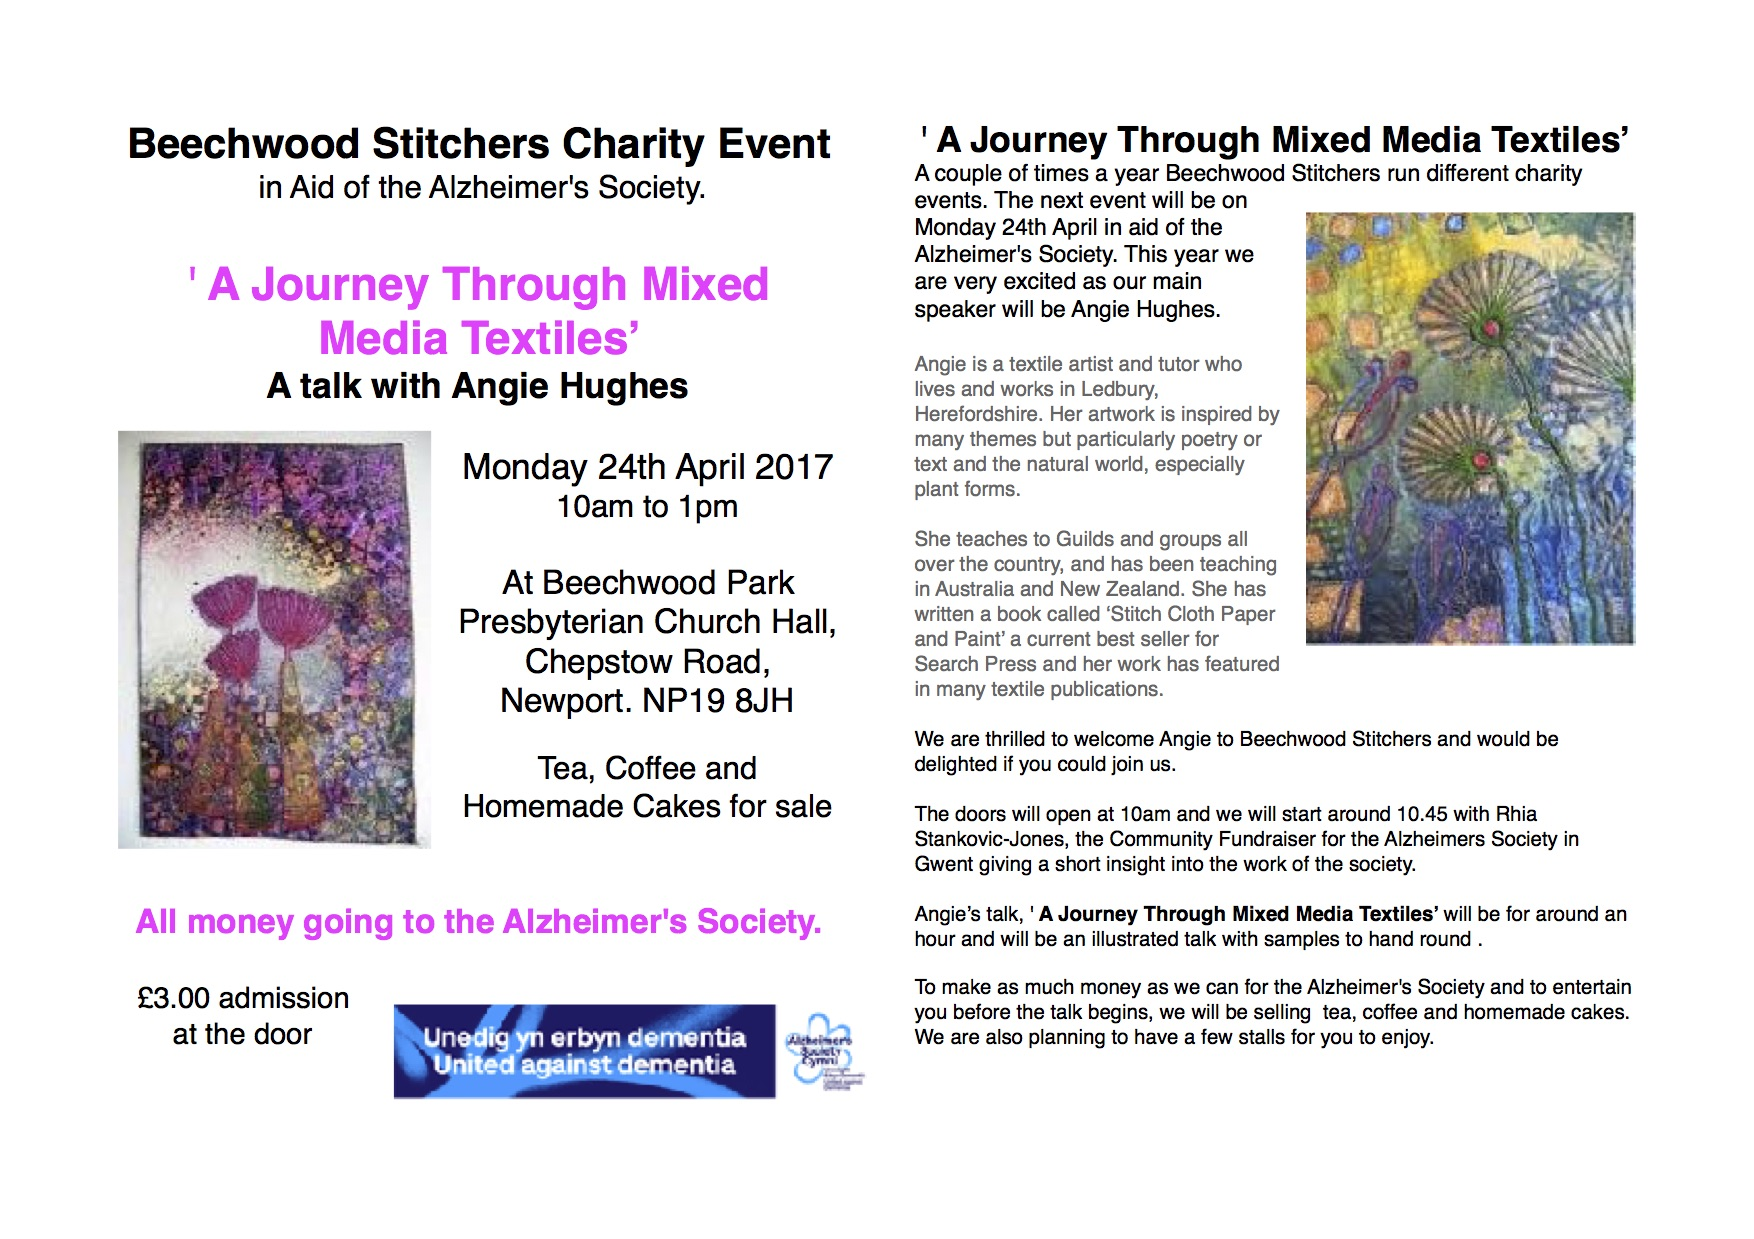 A Journey Through Mixed Media Textiles - Talk with Angie Hughes